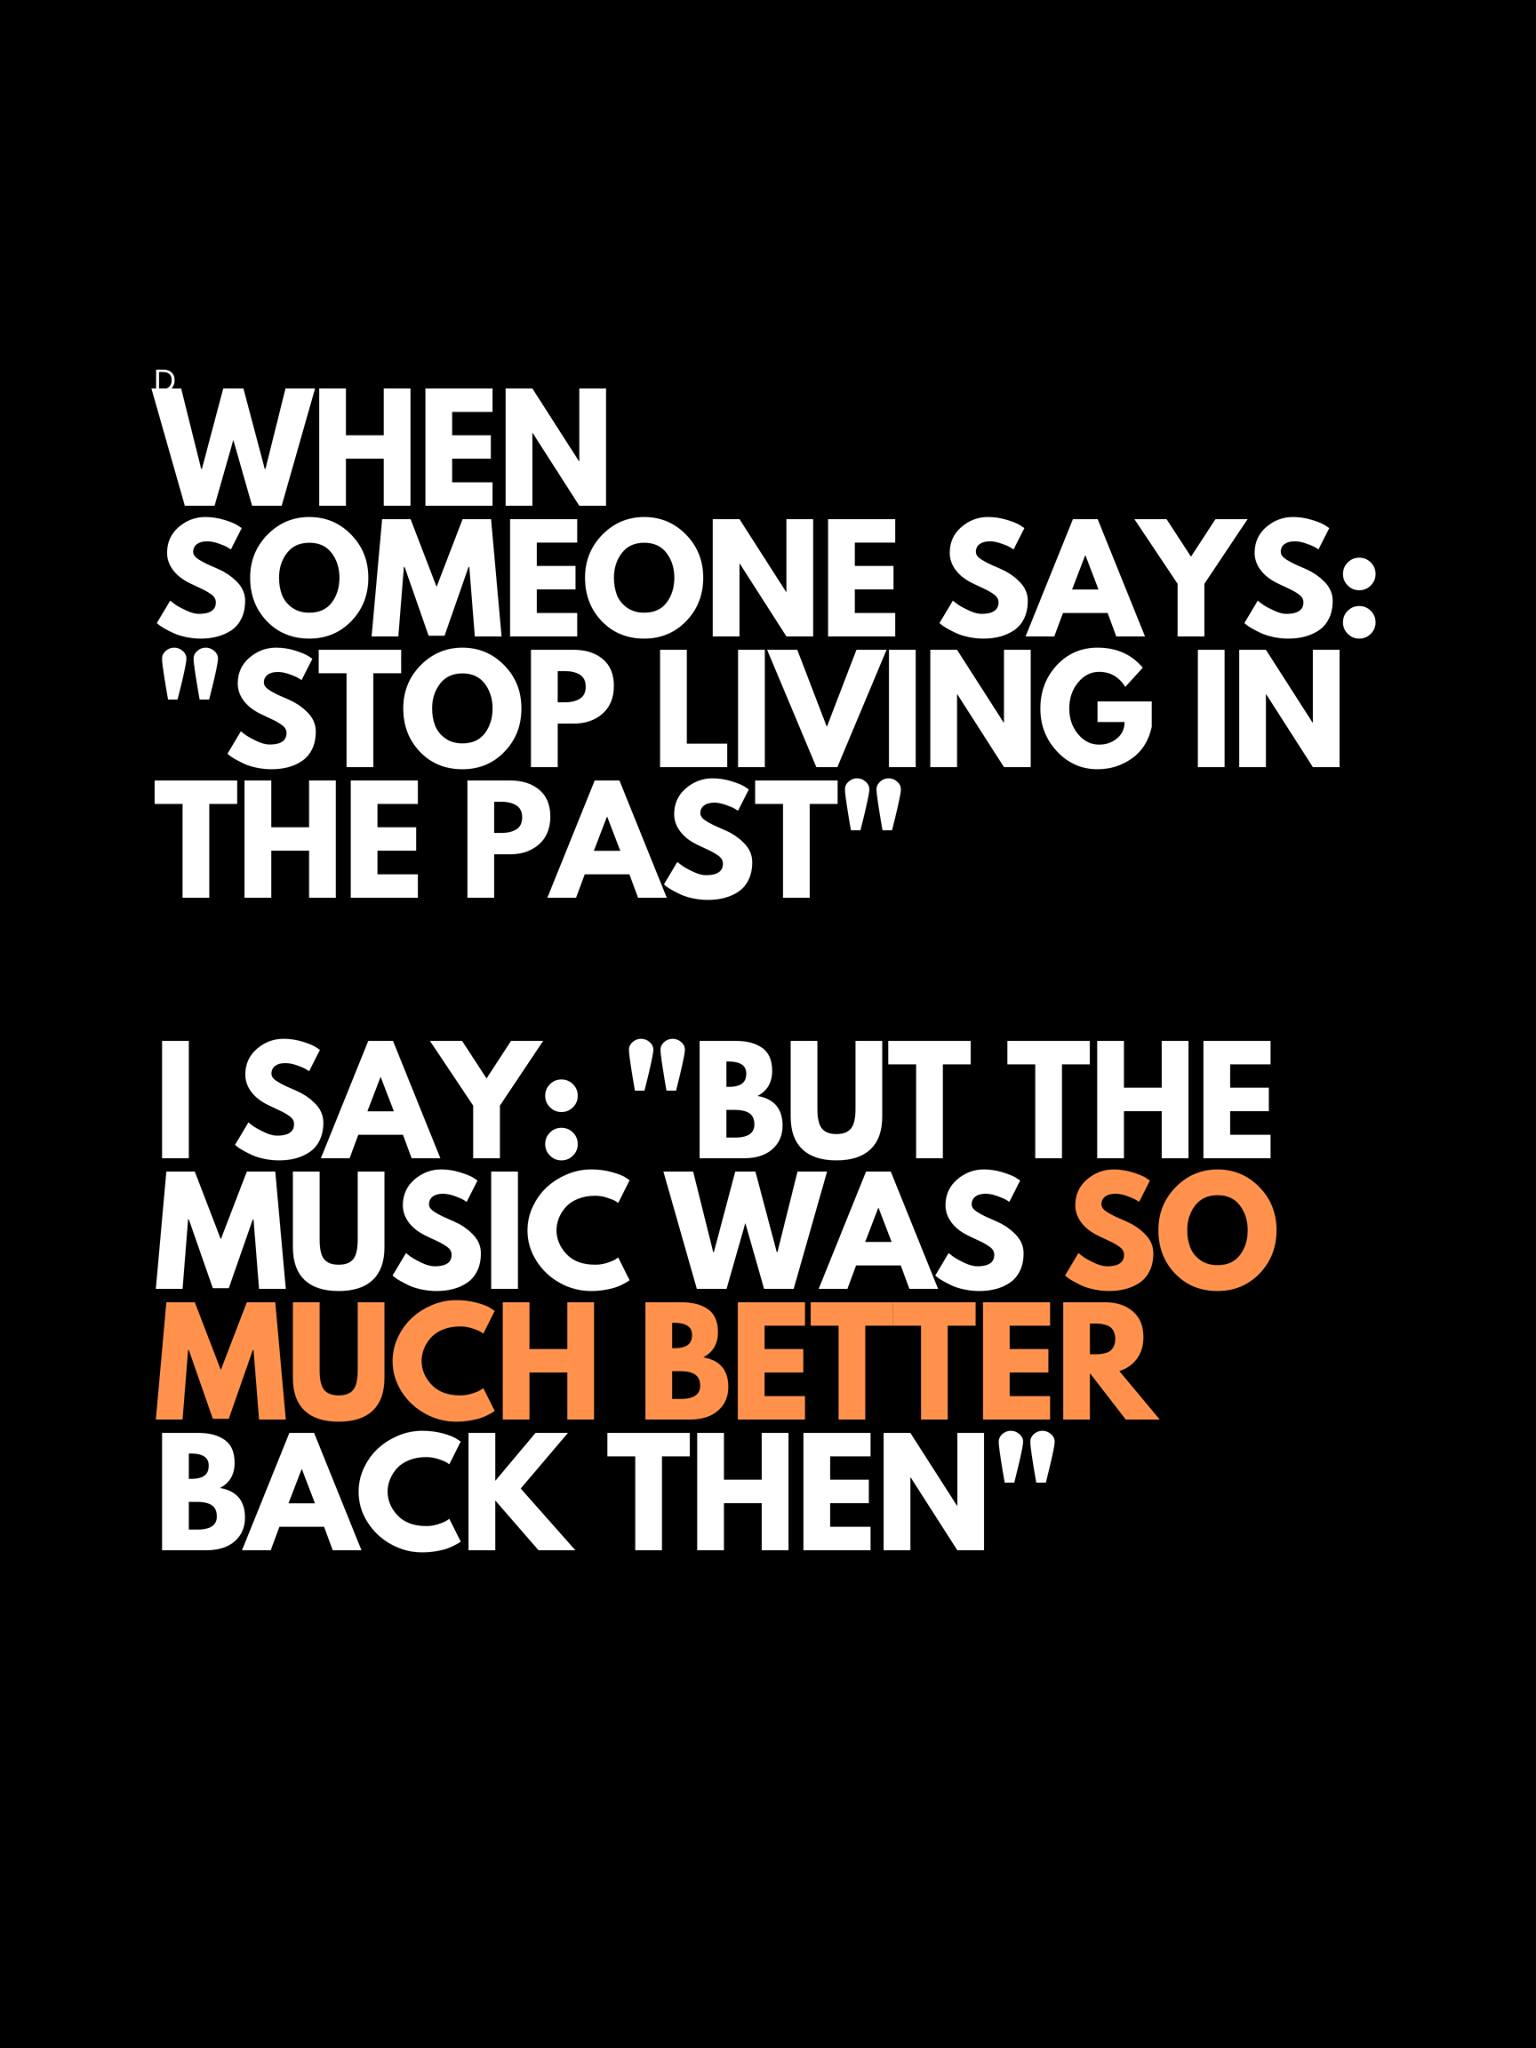 when someone says stop living in the past, i saw, but the music was so much better back then